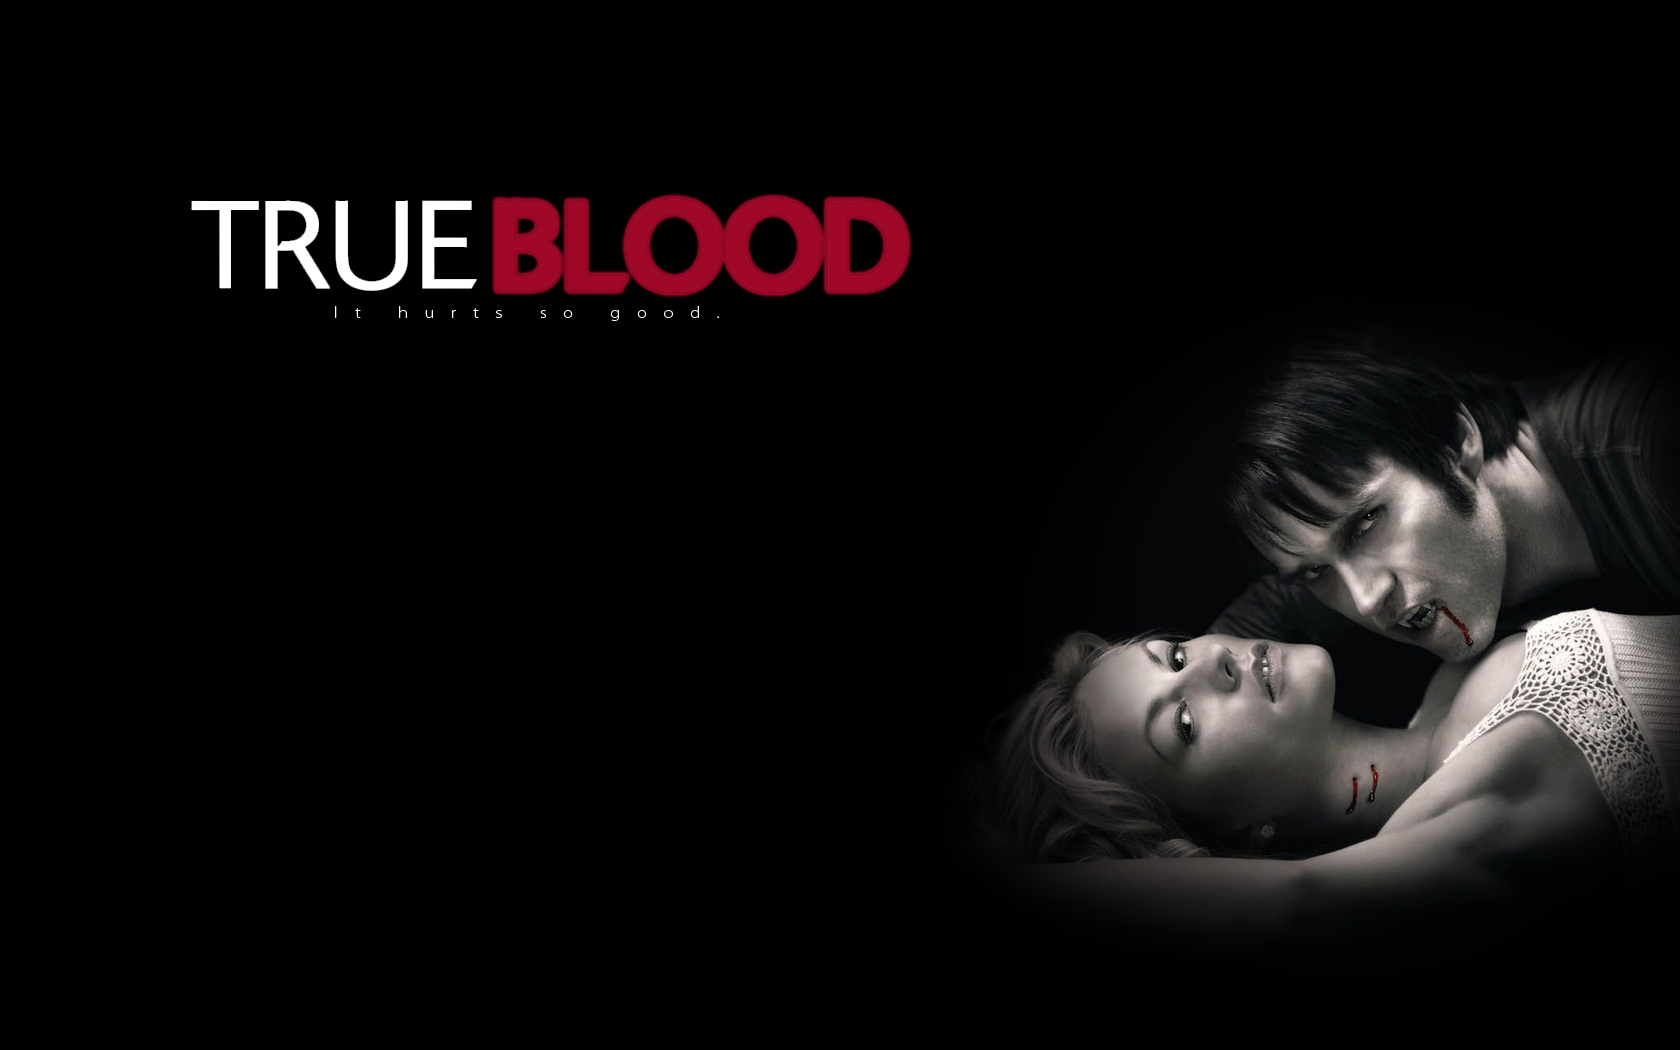 Sookie Stackhouse Images True Blood Season 2 HD Wallpaper And Background Photos